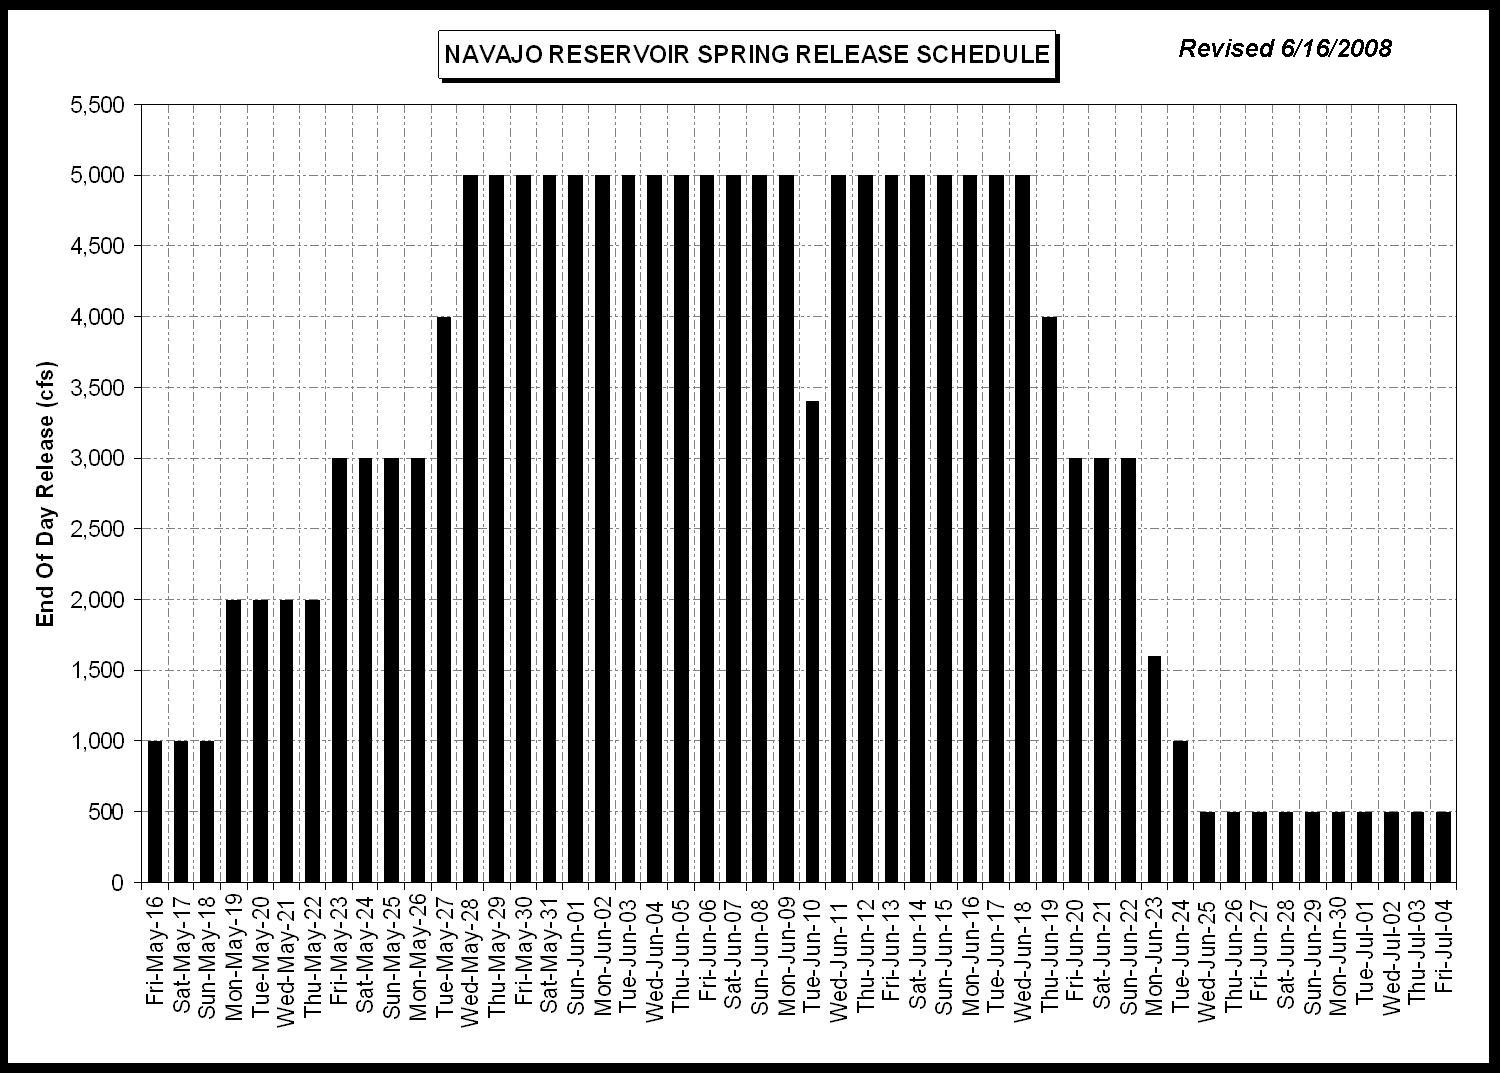 Picture of release chart dated 6/16/2008